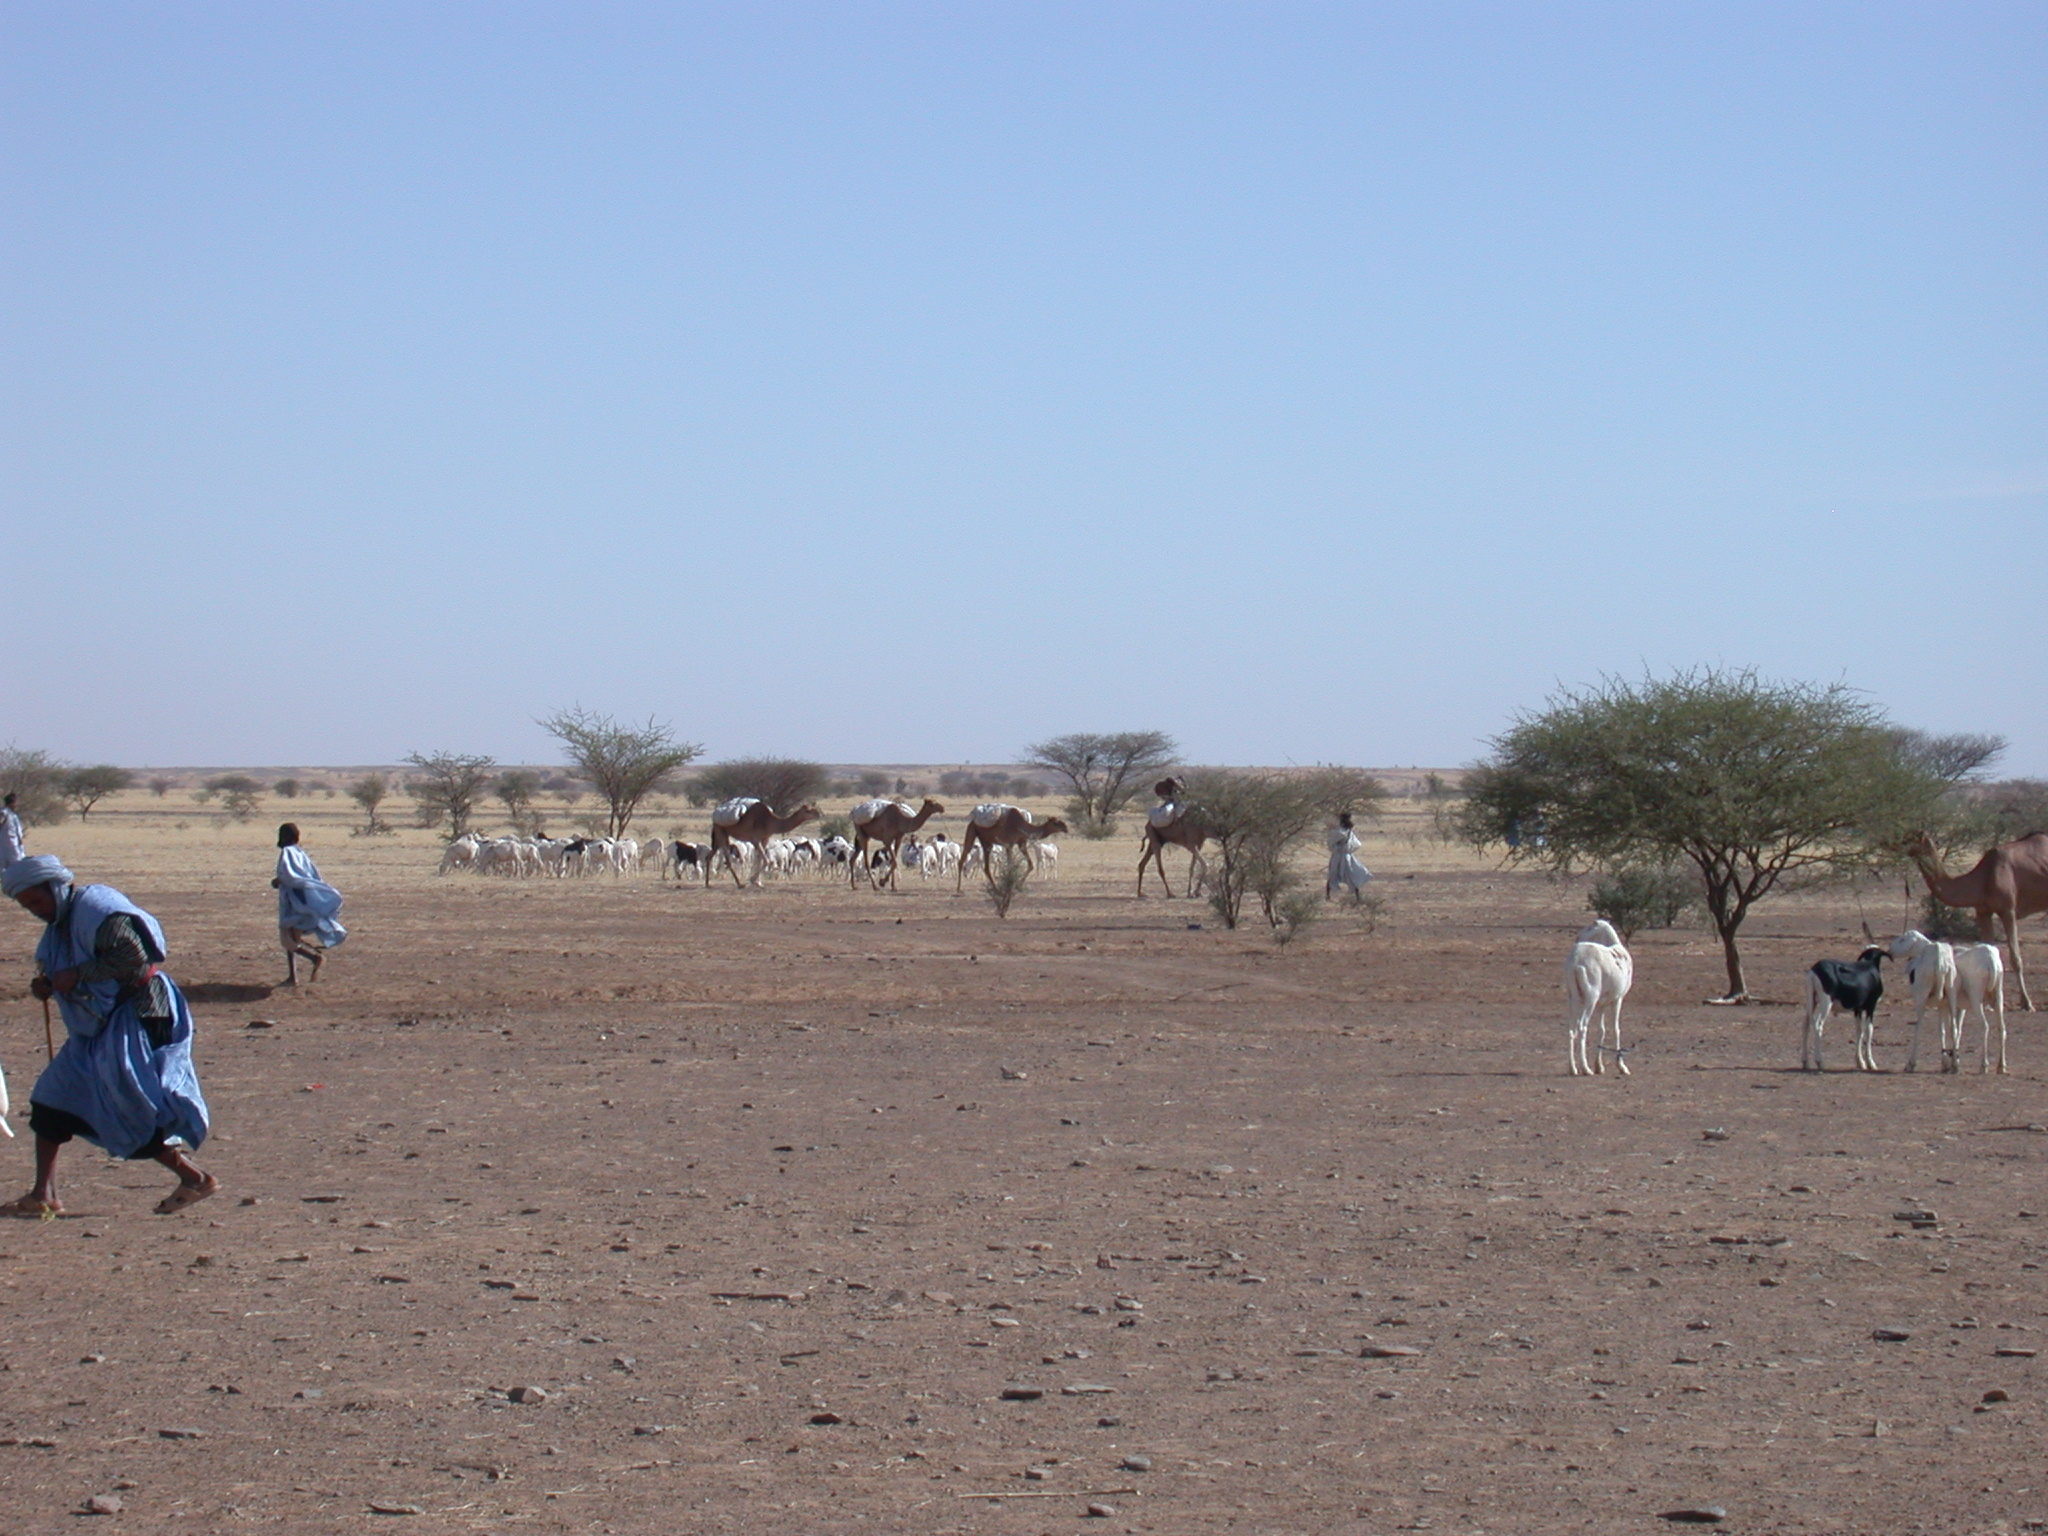 Scenery Along Route From Oualata to Nema, Mauritania